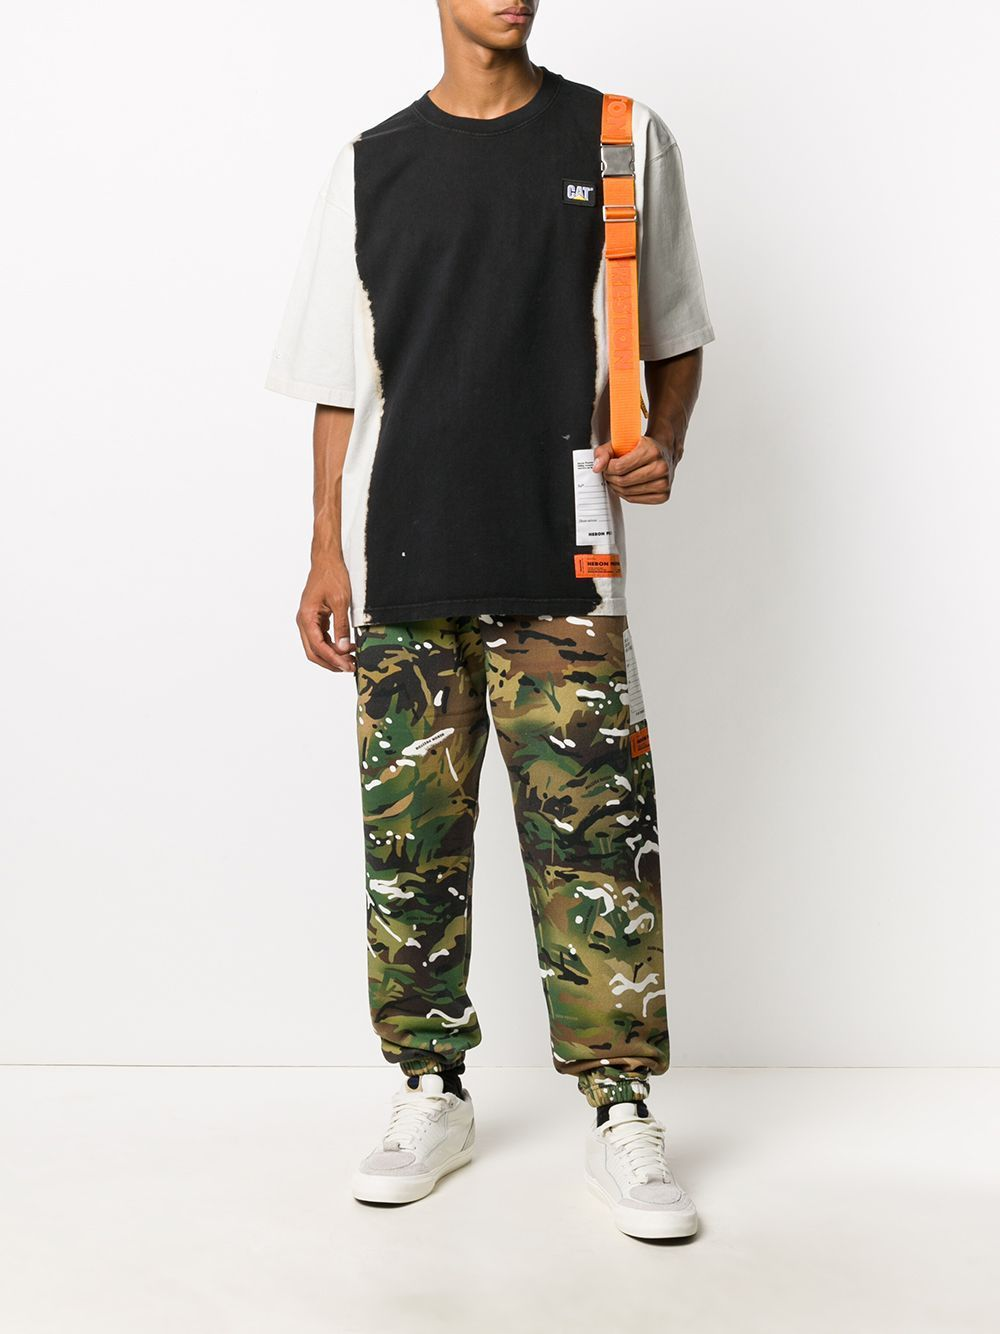 HERON PRESTON Oversized Tie Dye T-shirt Black/White